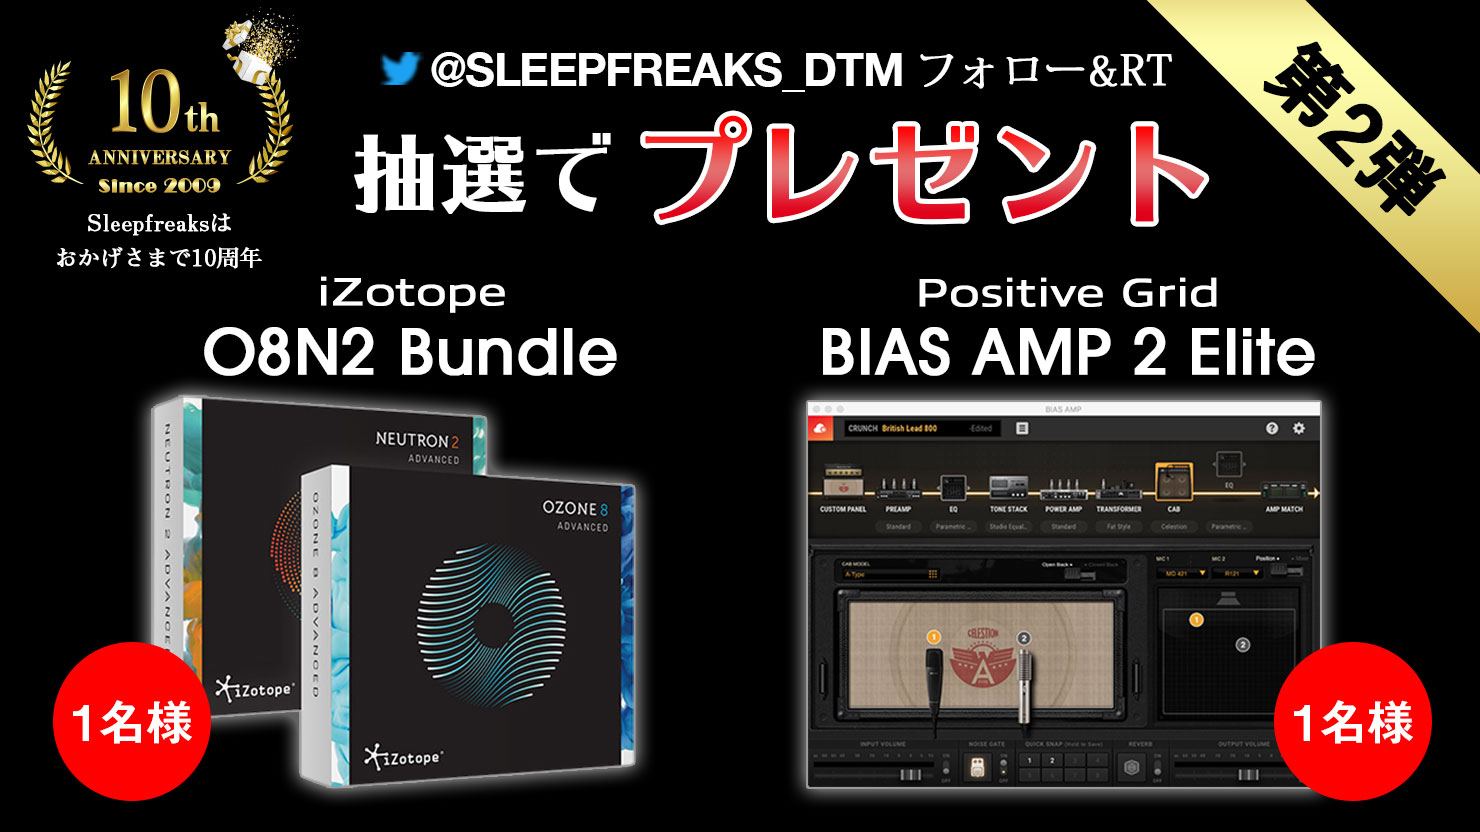 Sleepfreaks-10th-Anniversary-campaign-2